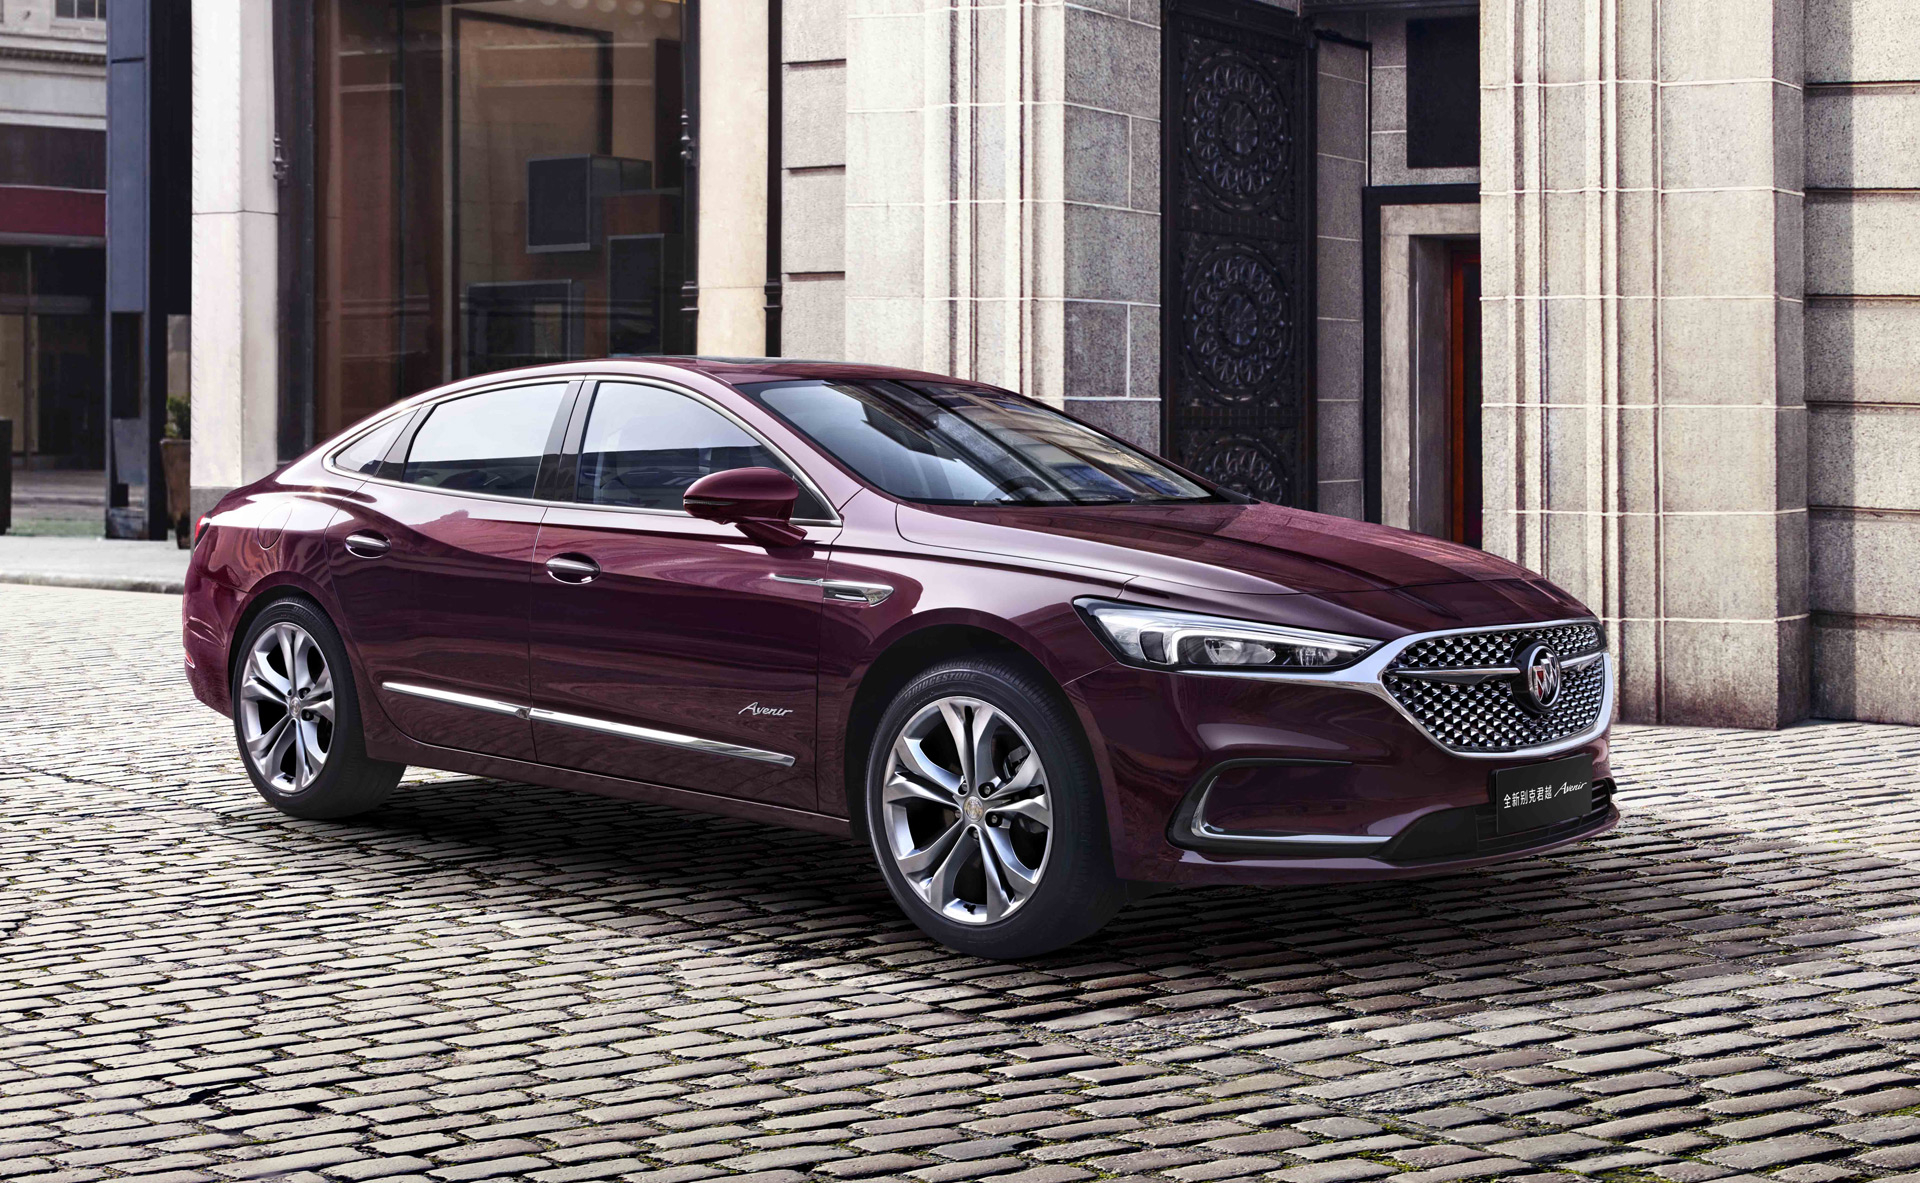 2020 Buick Lacrosse Made Handsome Just As It's Dropped In Us 2021 Buick Lacrosse Price, Interior, Specs